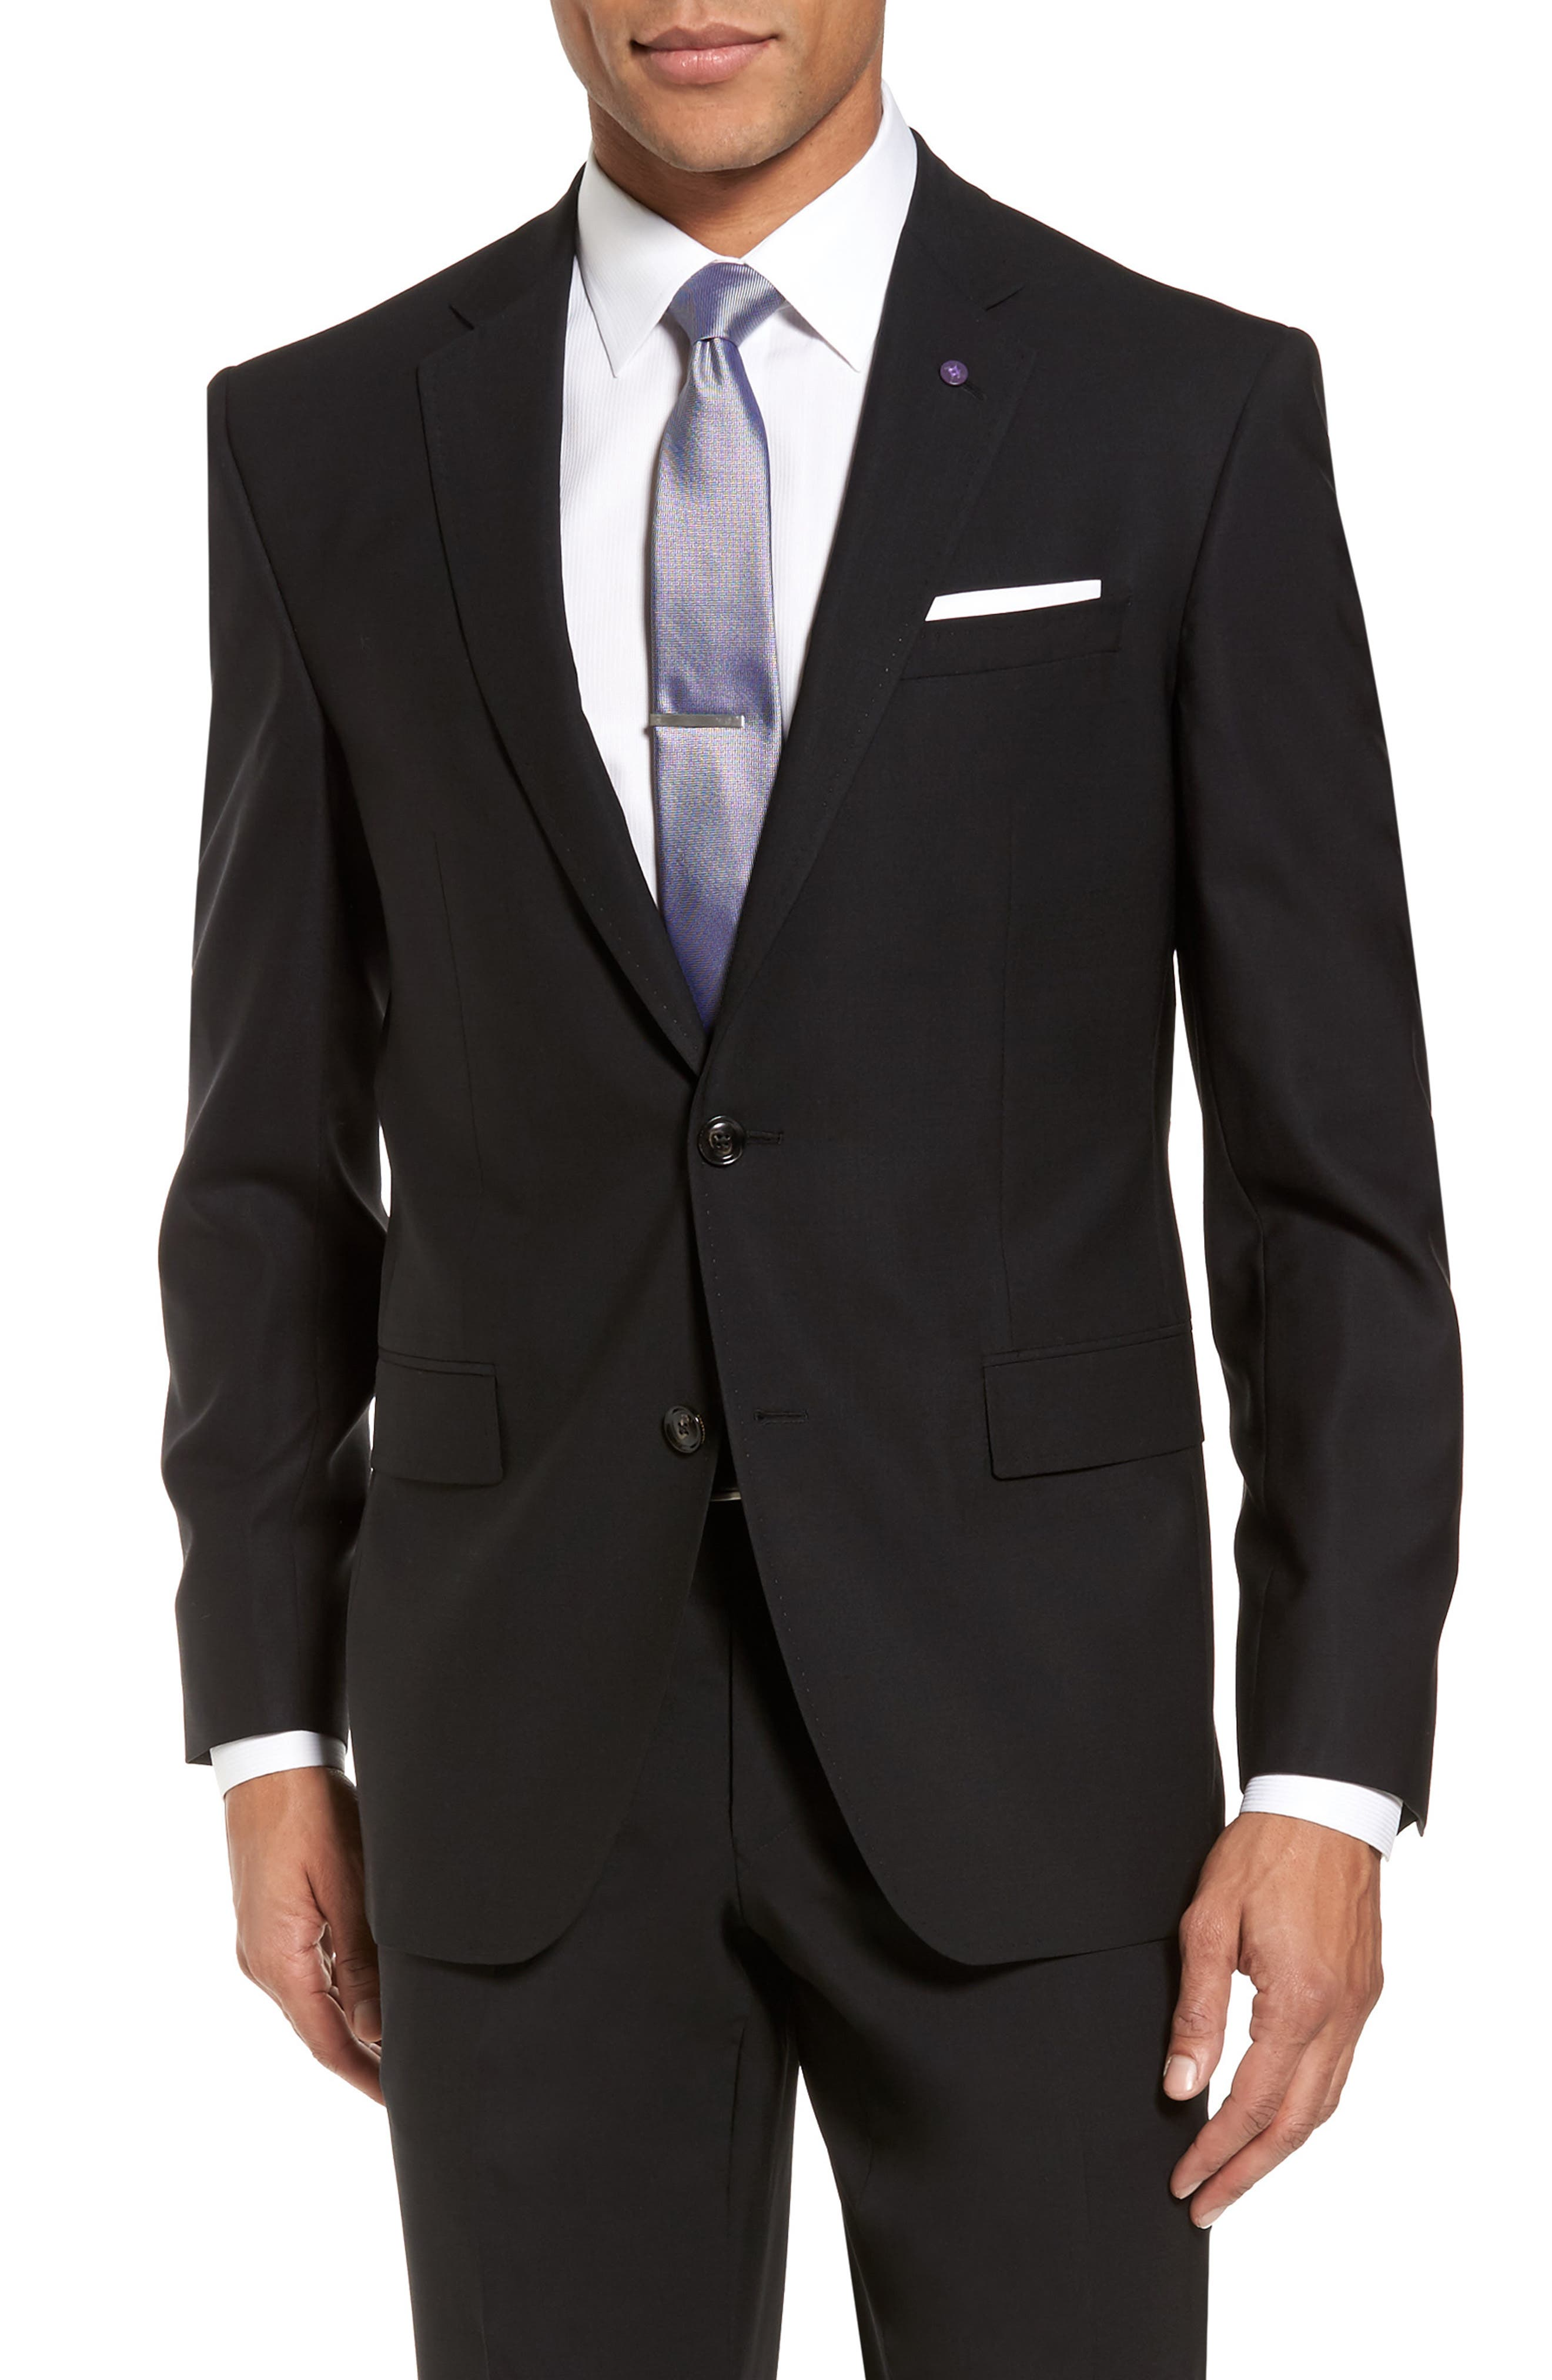 Jay Trim Fit Solid Wool Suit,                             Alternate thumbnail 5, color,                             Black